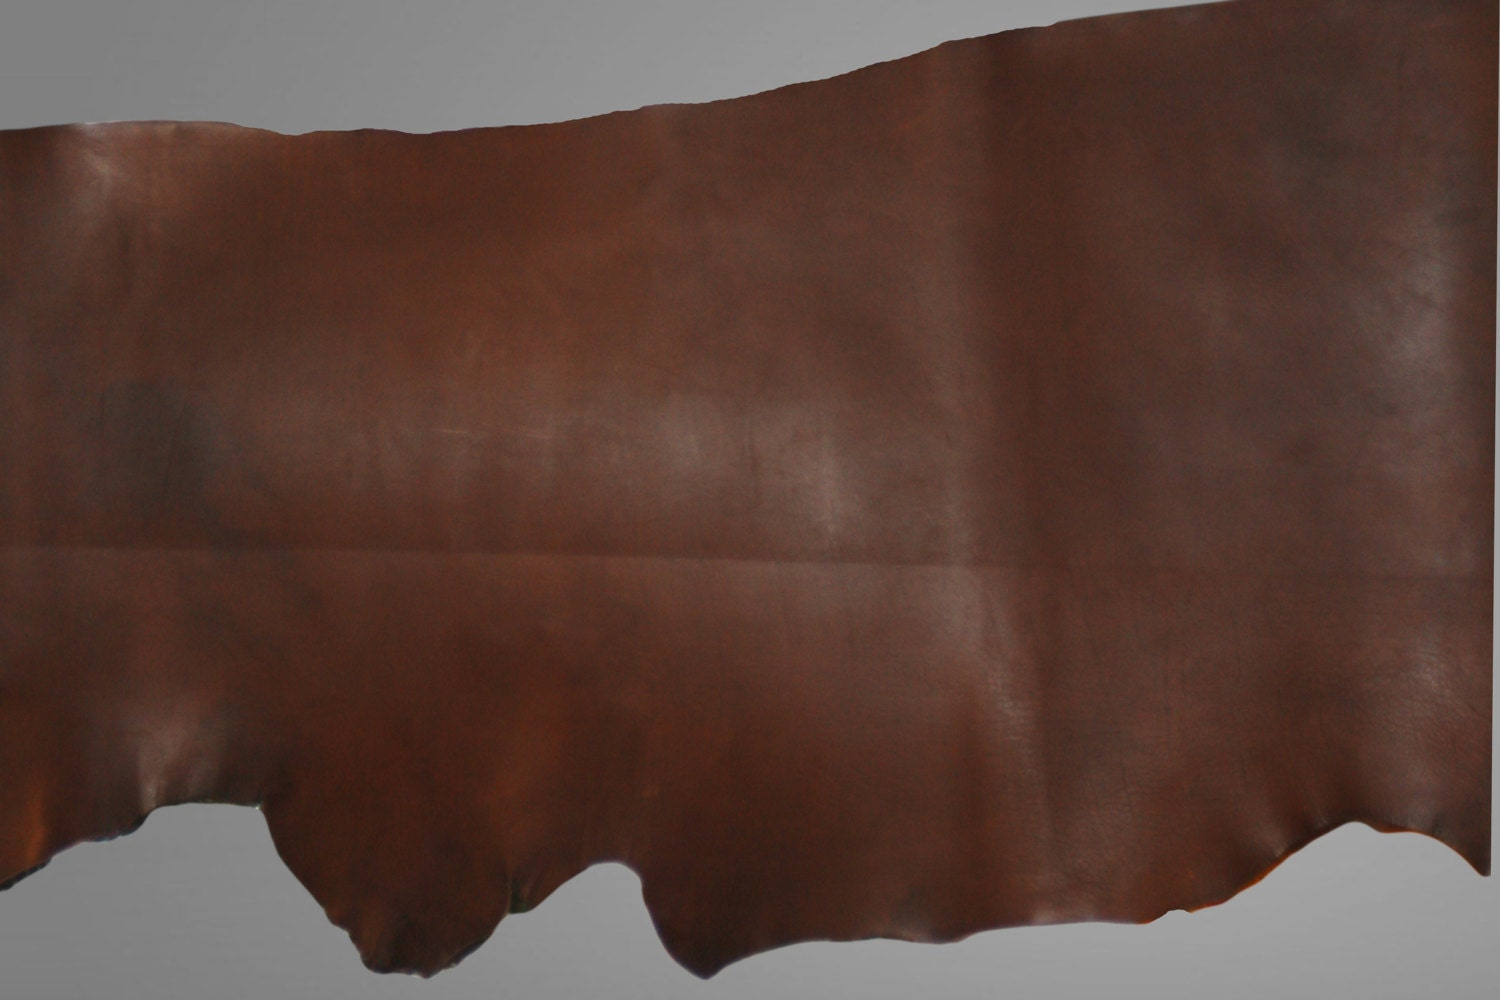 Leather scraps for crafts - Sold By Vtleatherstore